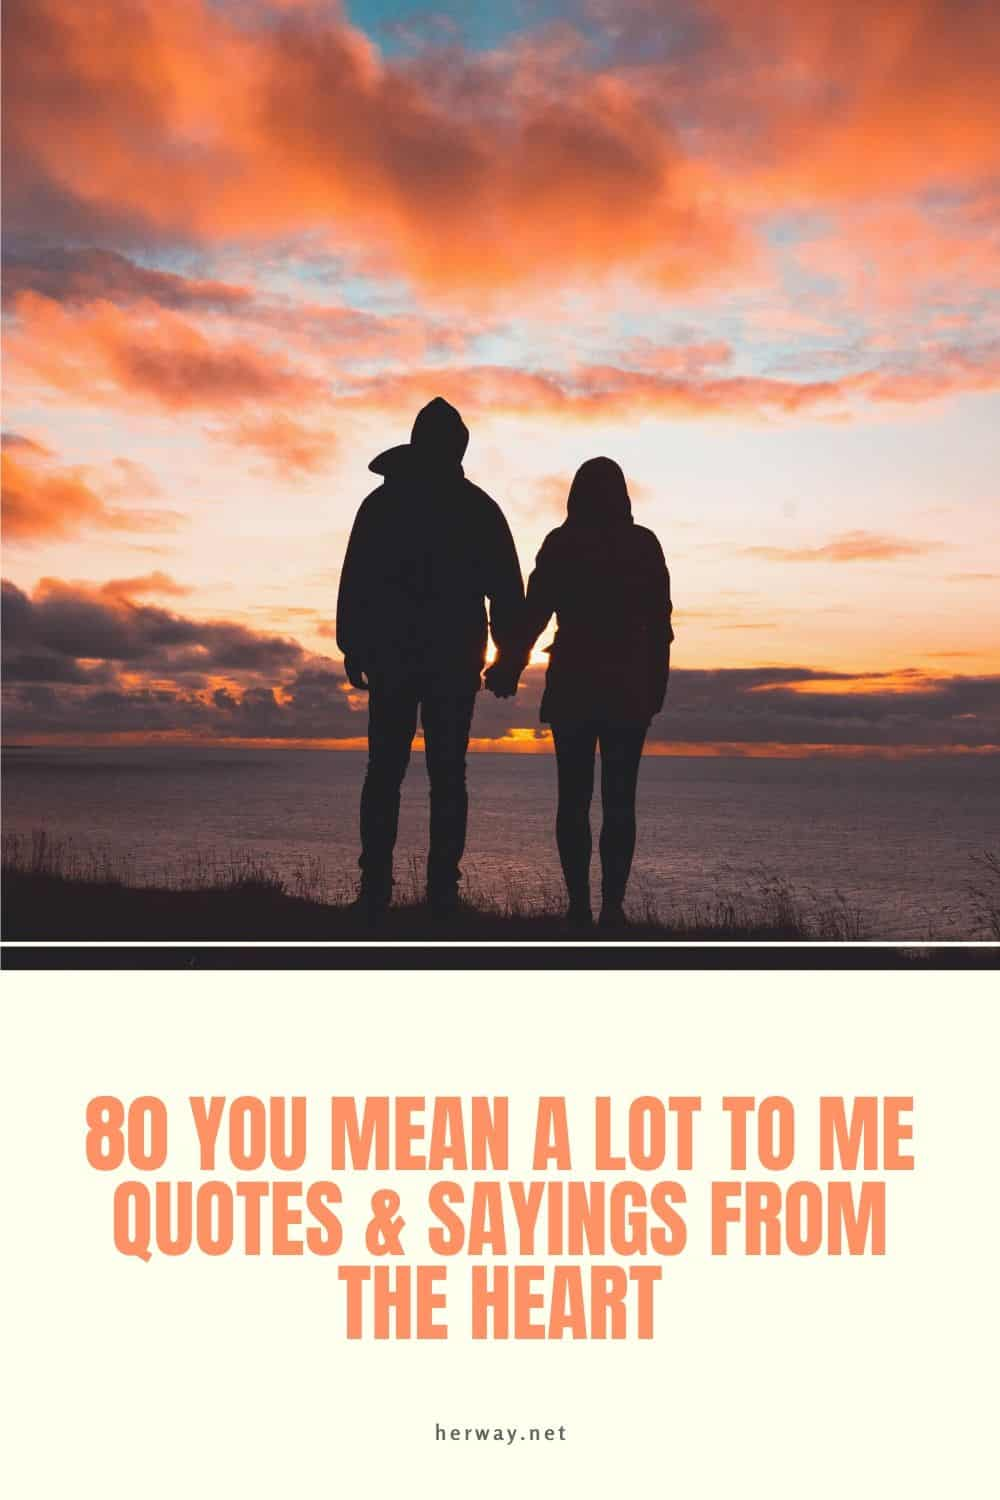 80 You Mean A Lot To Me Quotes & Sayings From The Heart